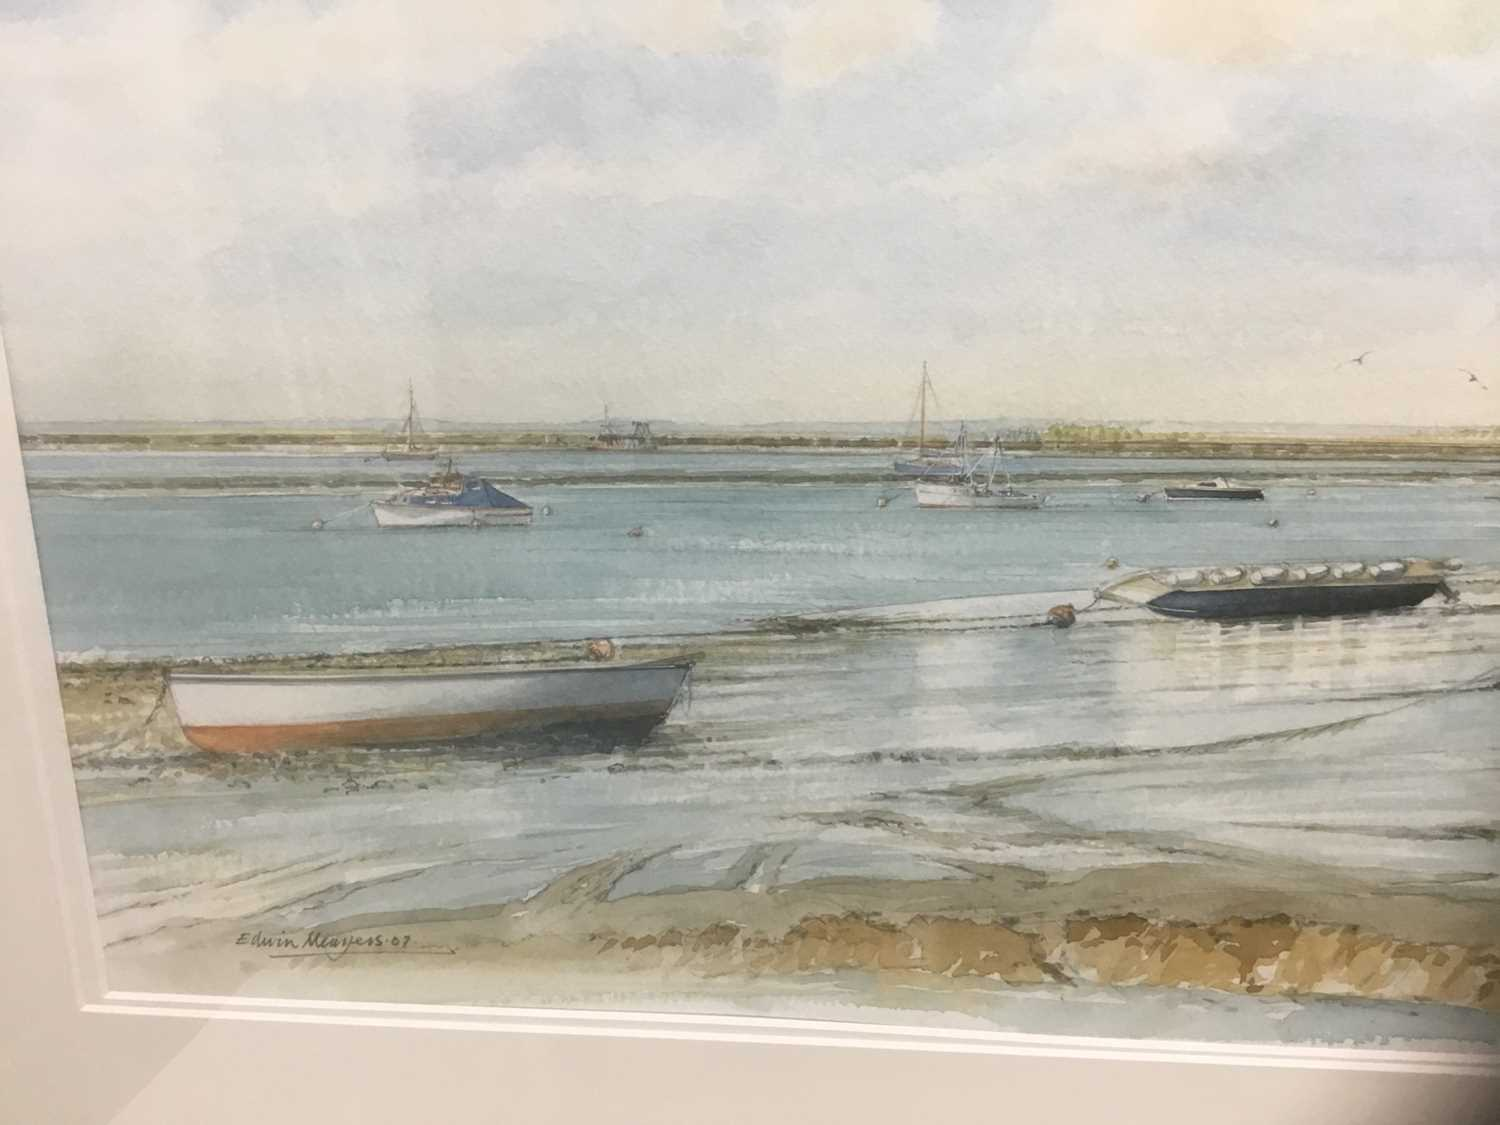 Edwin Meayers (b.1927) watercolour - West Mersea, signed, inscribed and dated '07, 42cm x 67cm, in g - Image 5 of 8